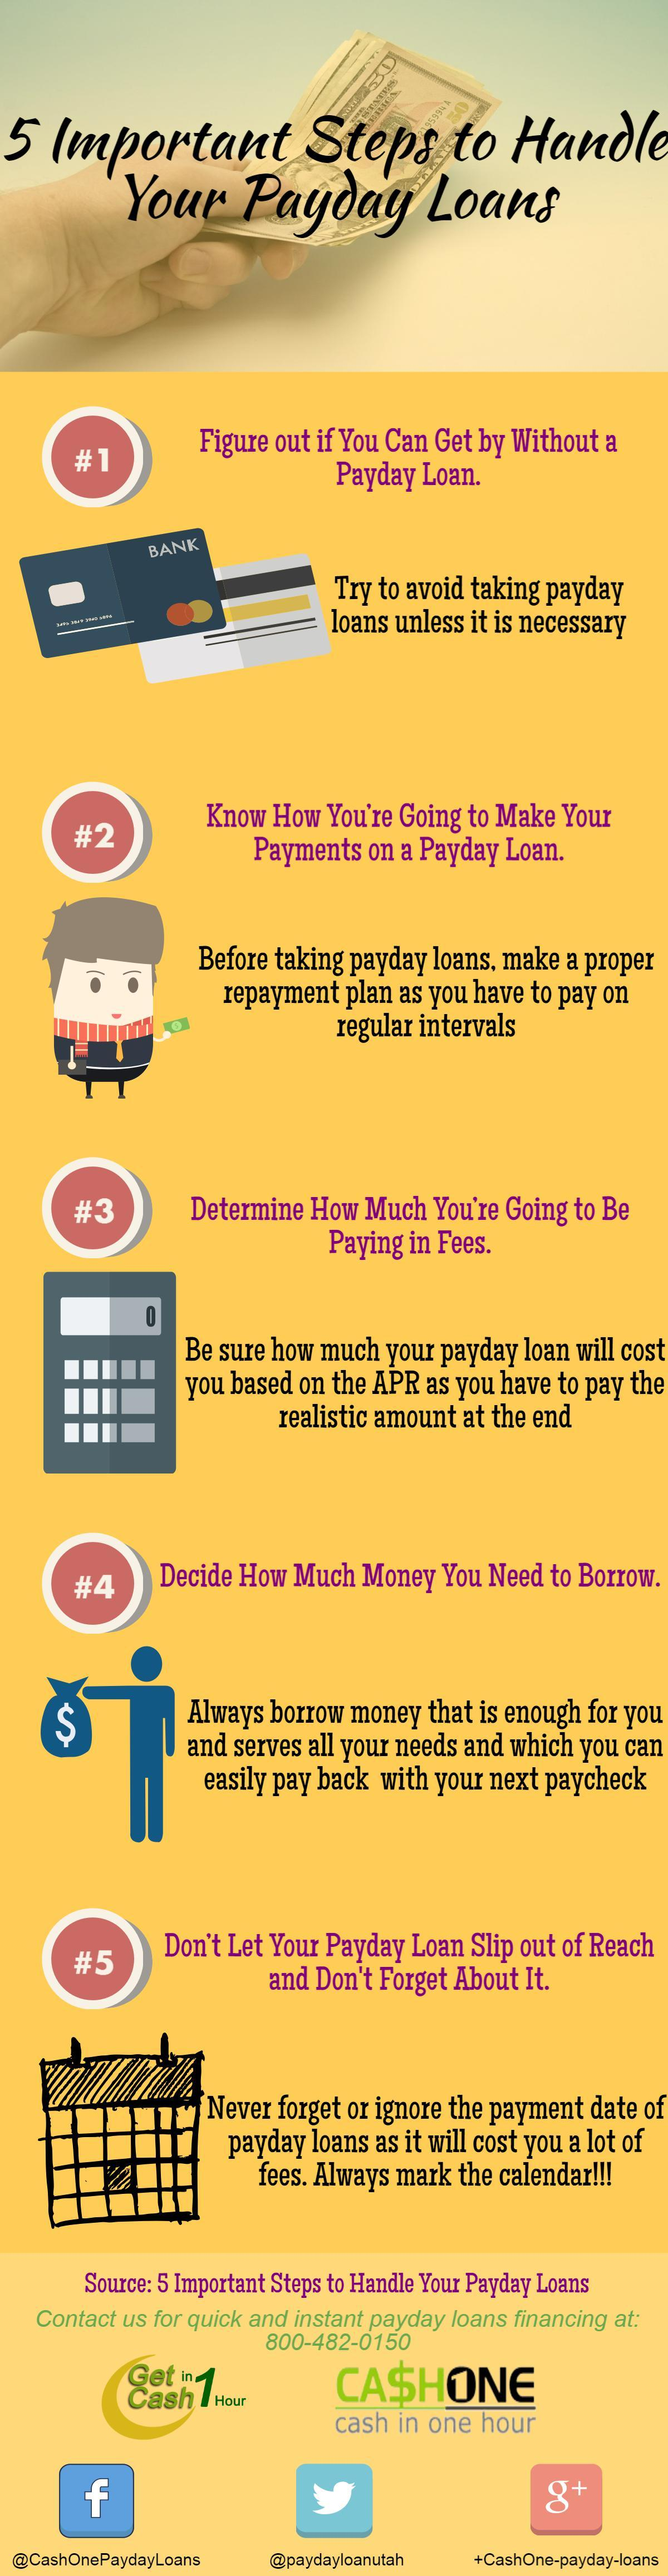 Important Steps to Handle Your Payday Loans